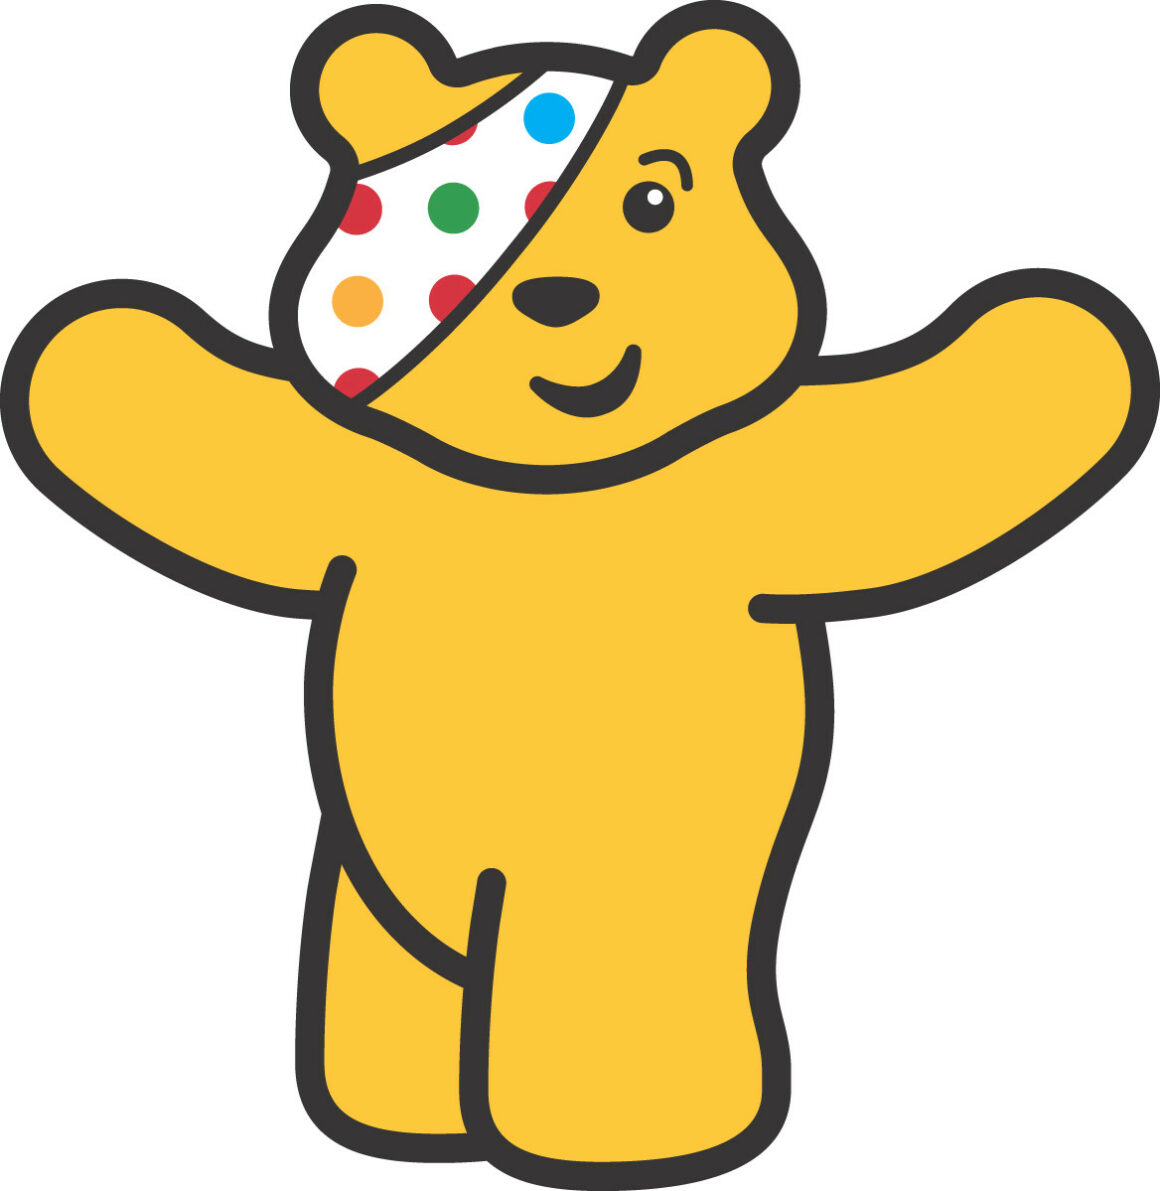 Children in Need Day – 15th November 2019